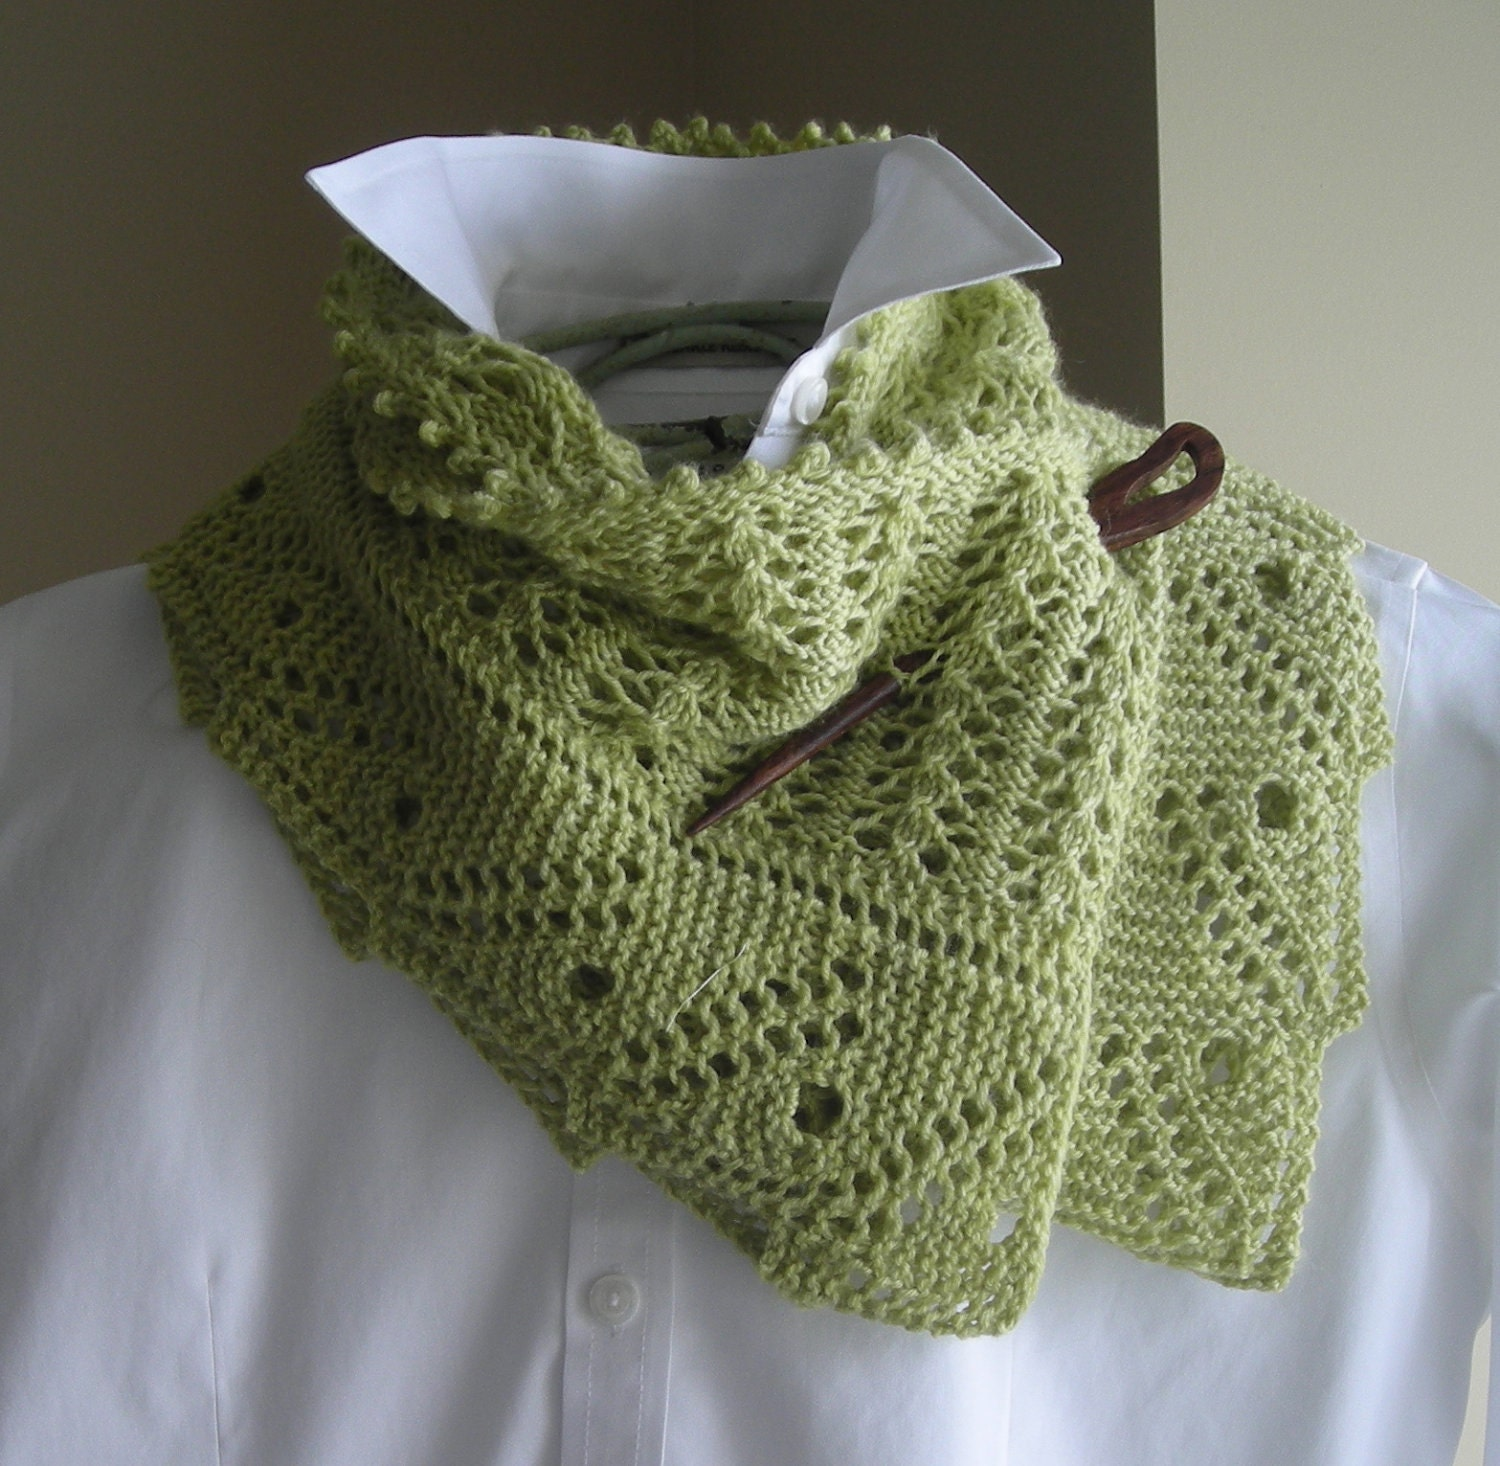 Shawl Knitting Pattern : Lace Scarf Shawl Knitting Pattern by lavenderhillknits on Etsy